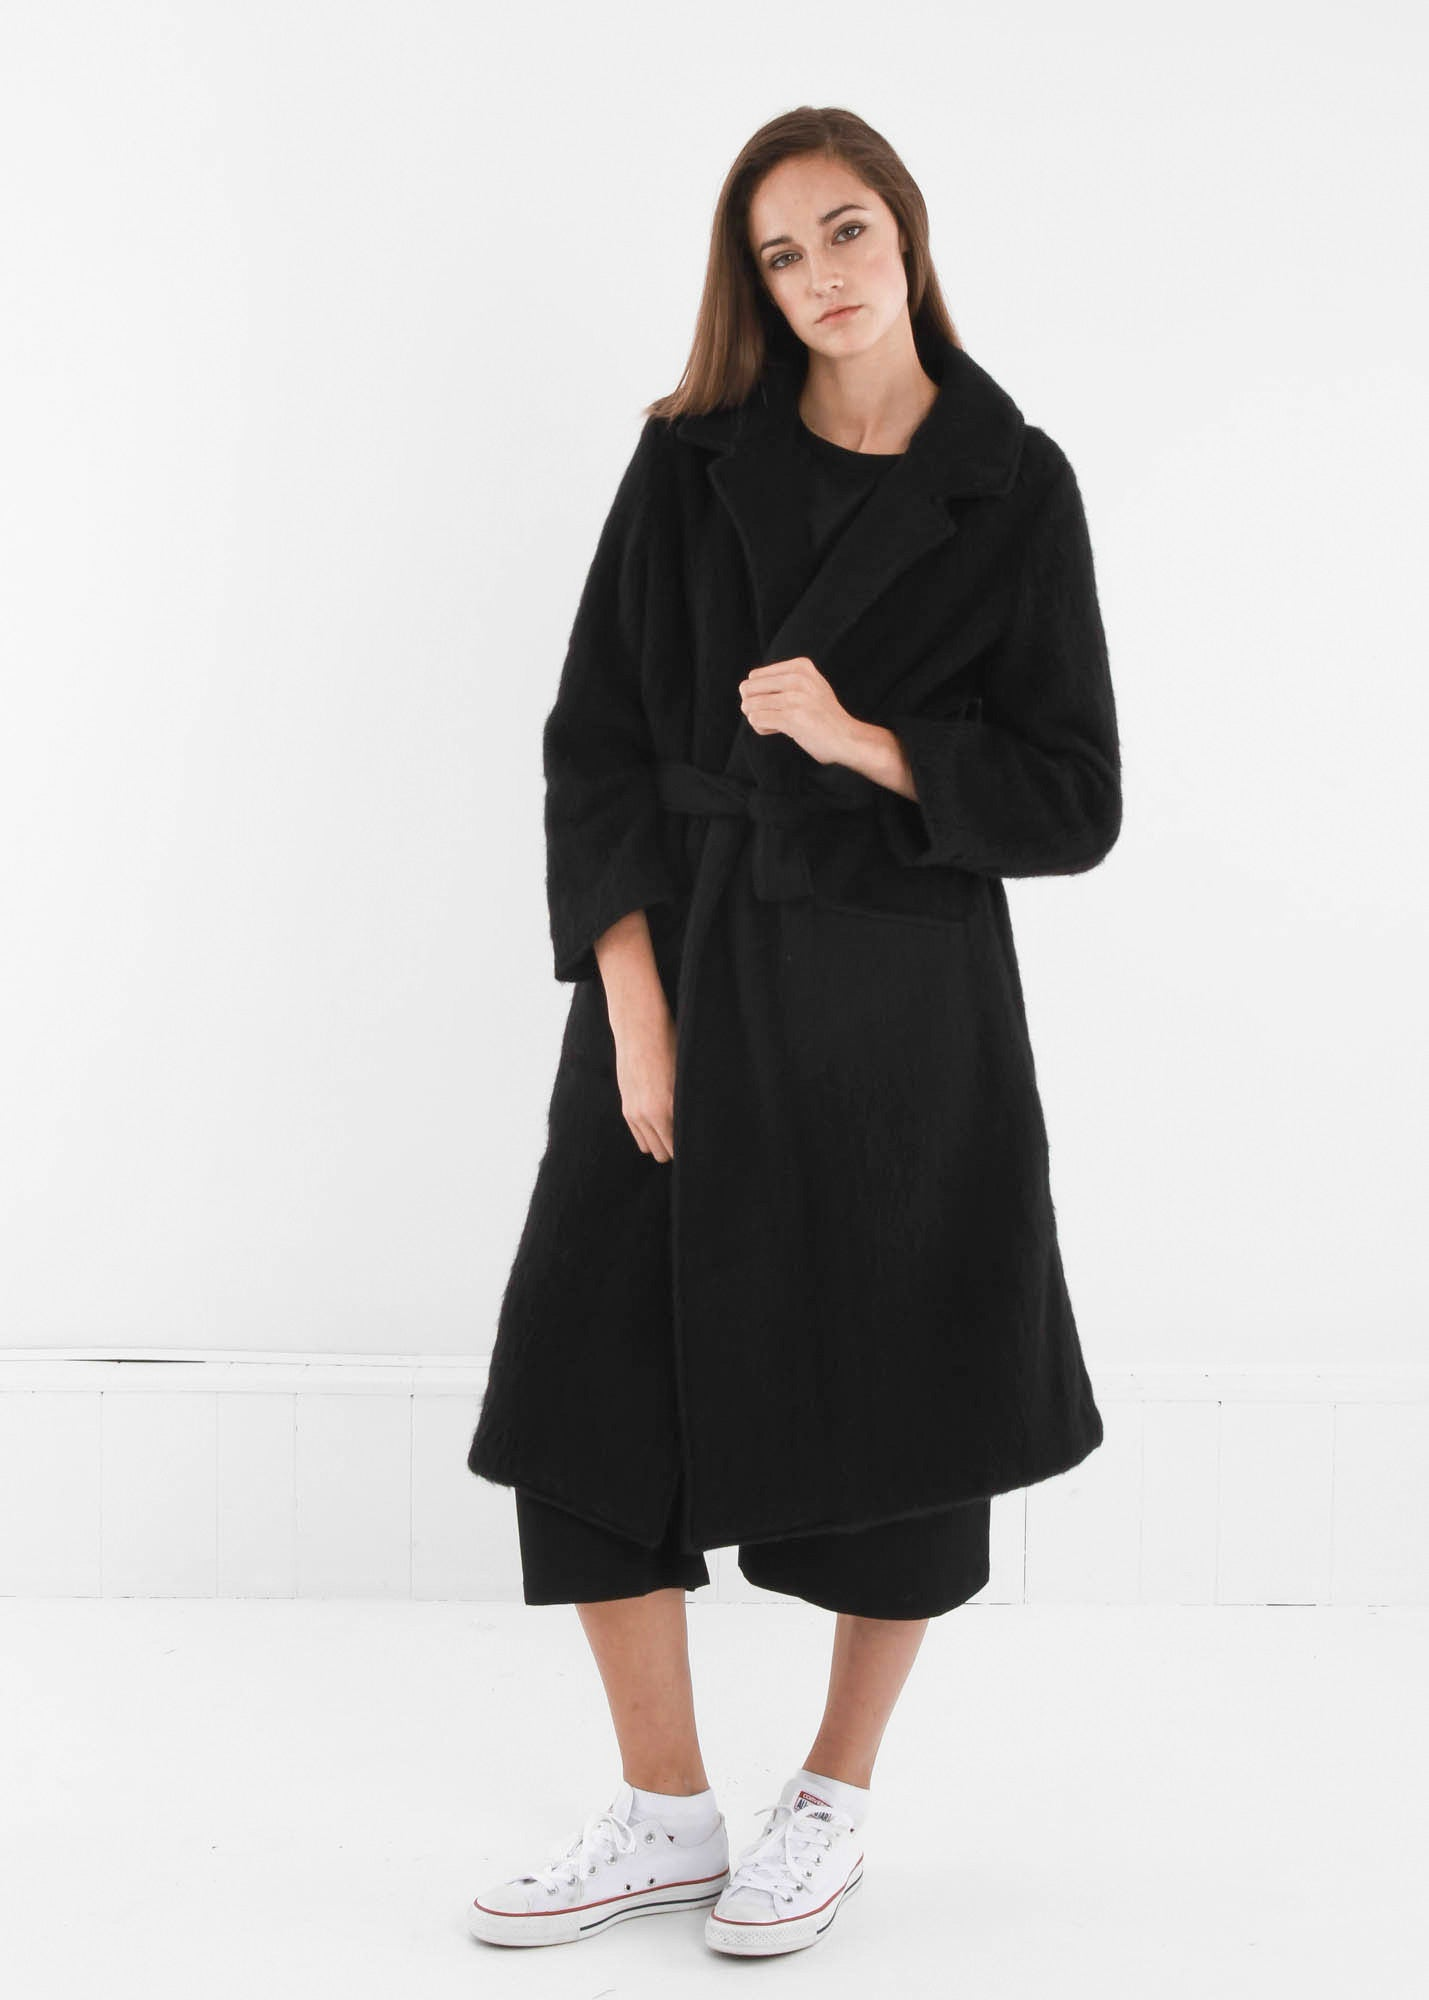 Base Range Black Pyrénées Coat - New Classics Studios  - 3